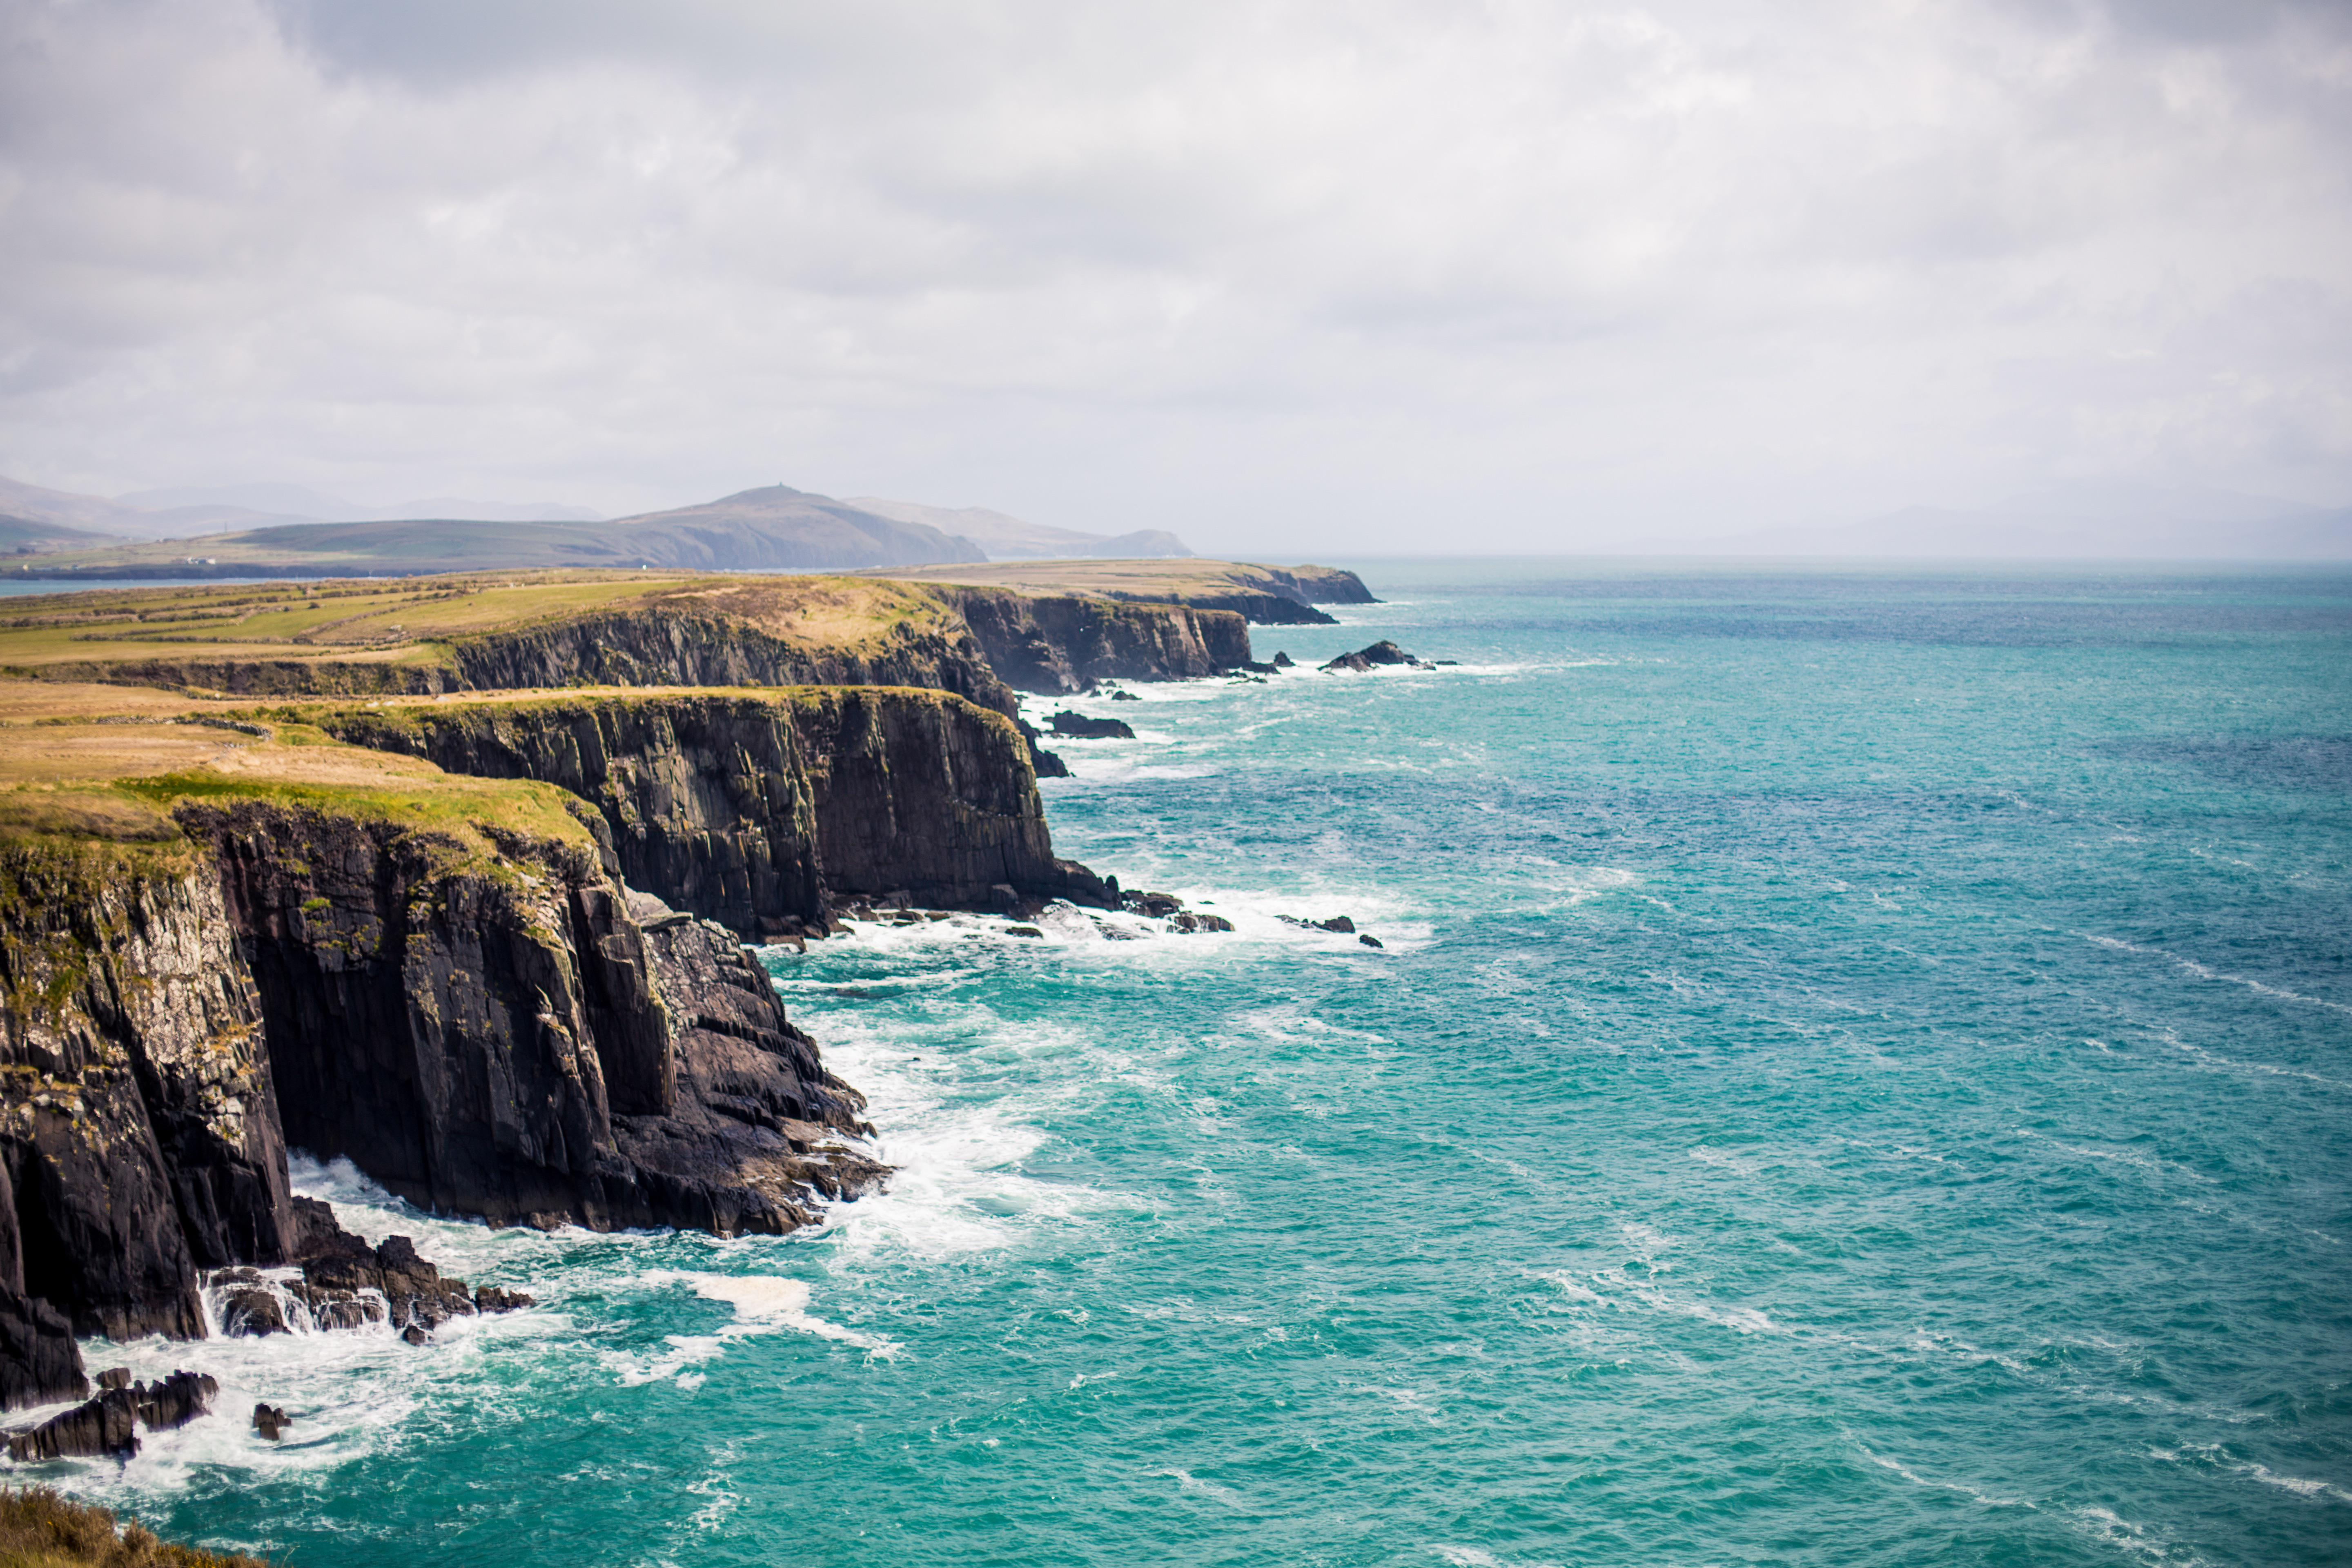 Cliffs along the coast near Dingle, Ireland